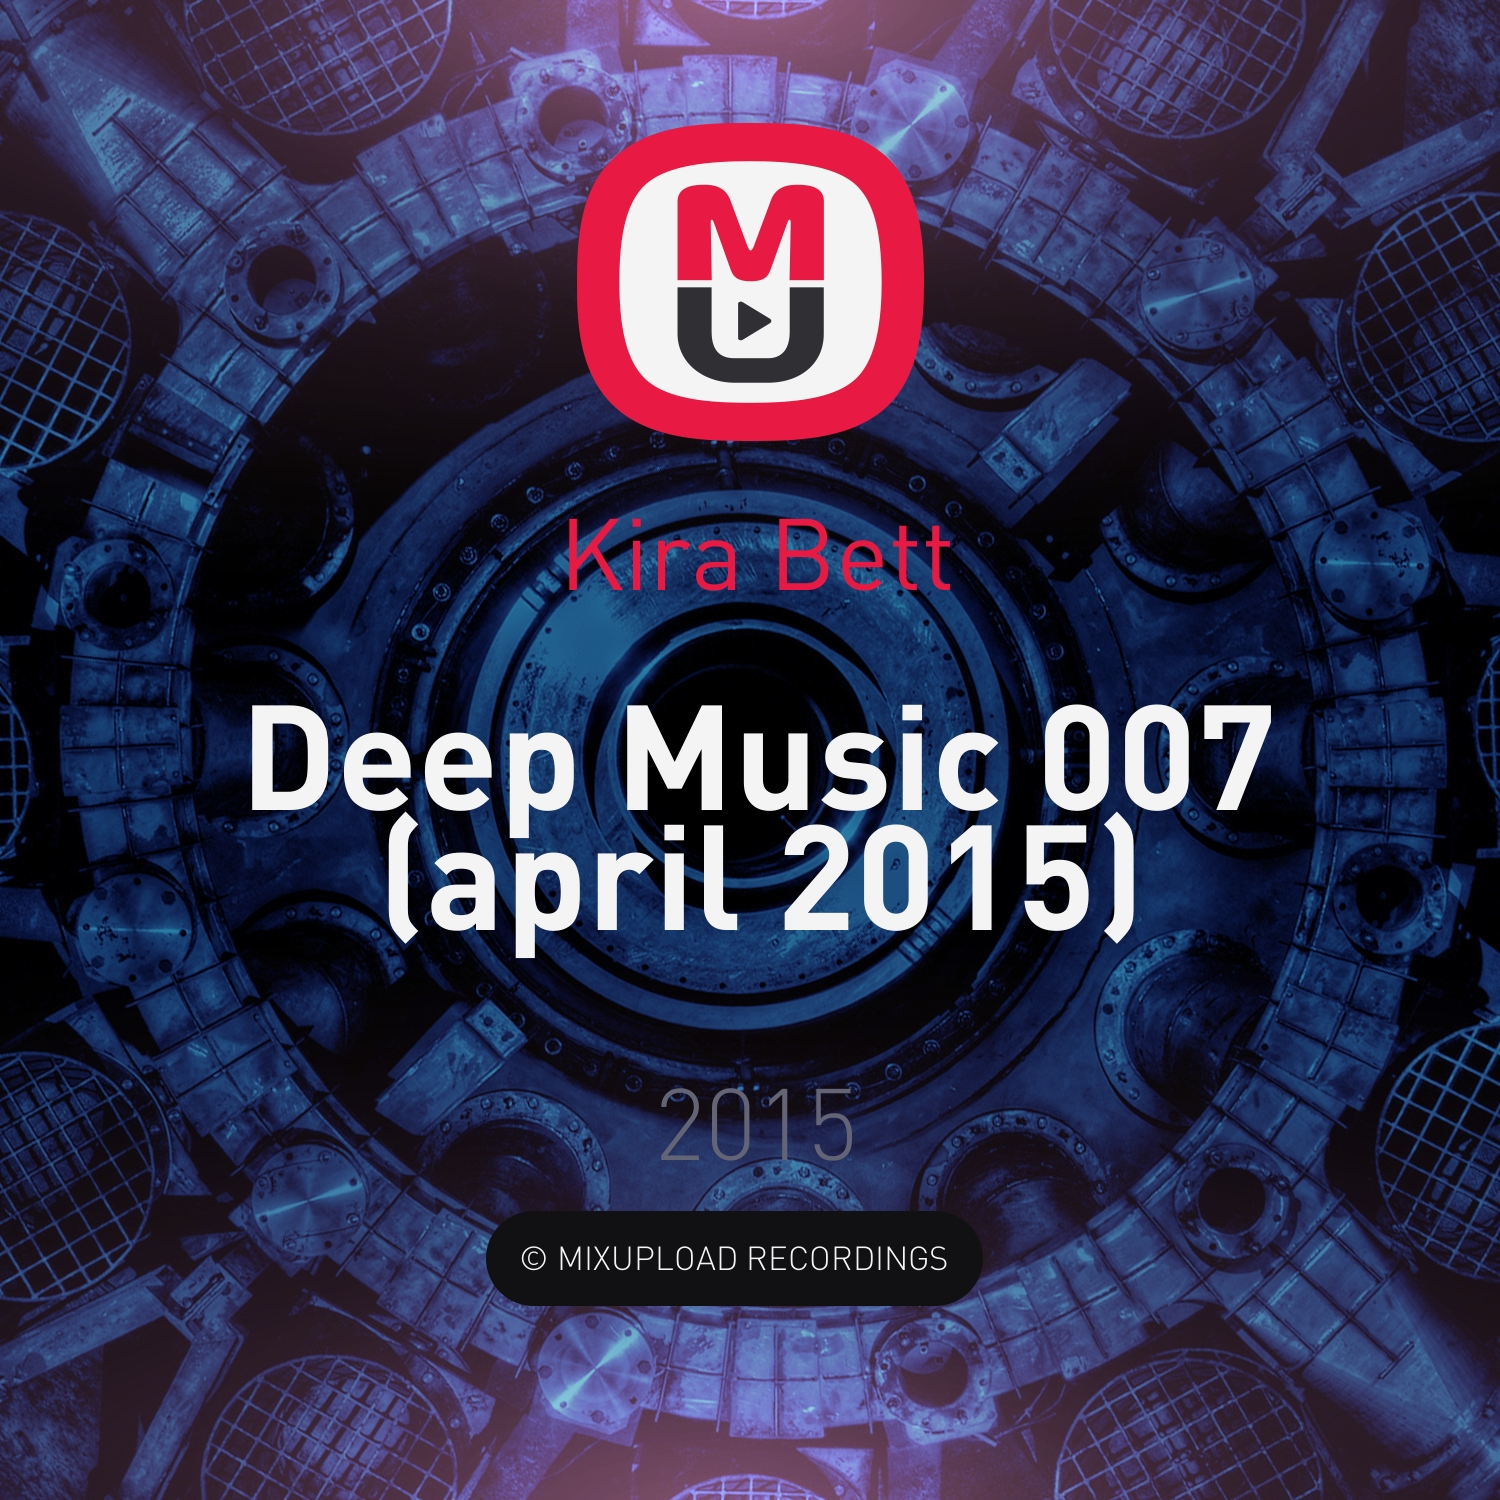 Kira Bett - Deep Music 007 (april 2015)